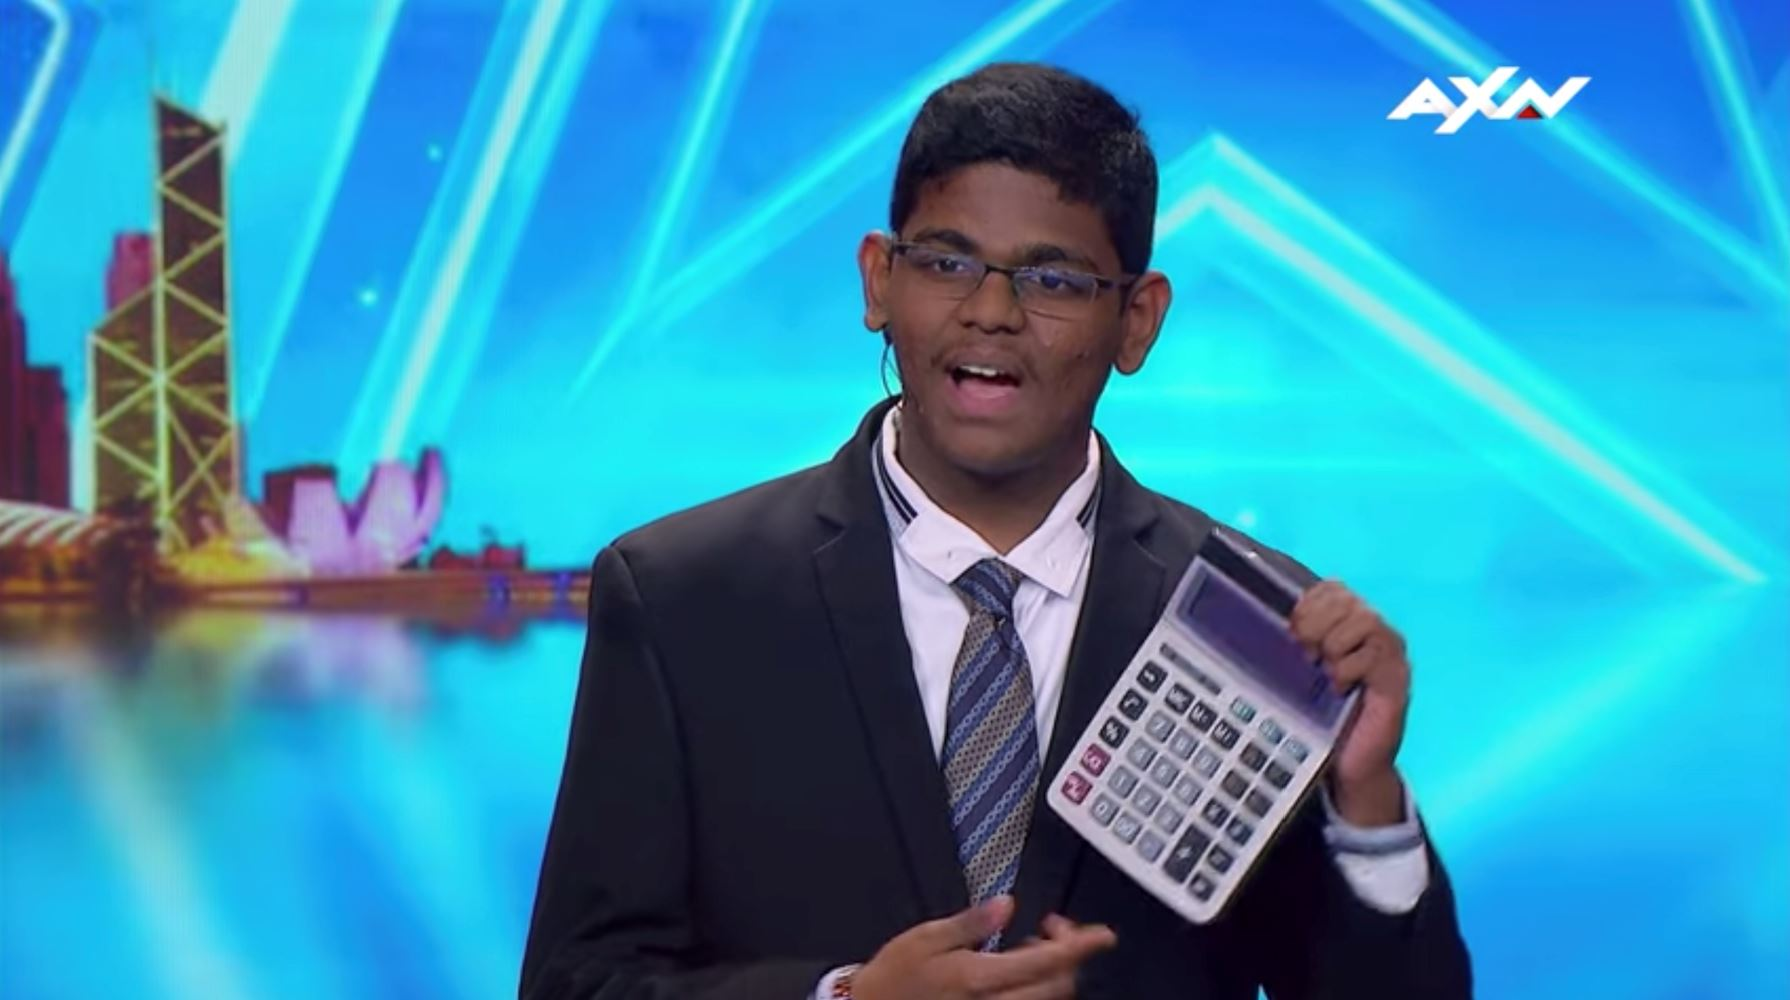 this 15yo malaysian math genius just blew everyone's mind at asia's got talent!